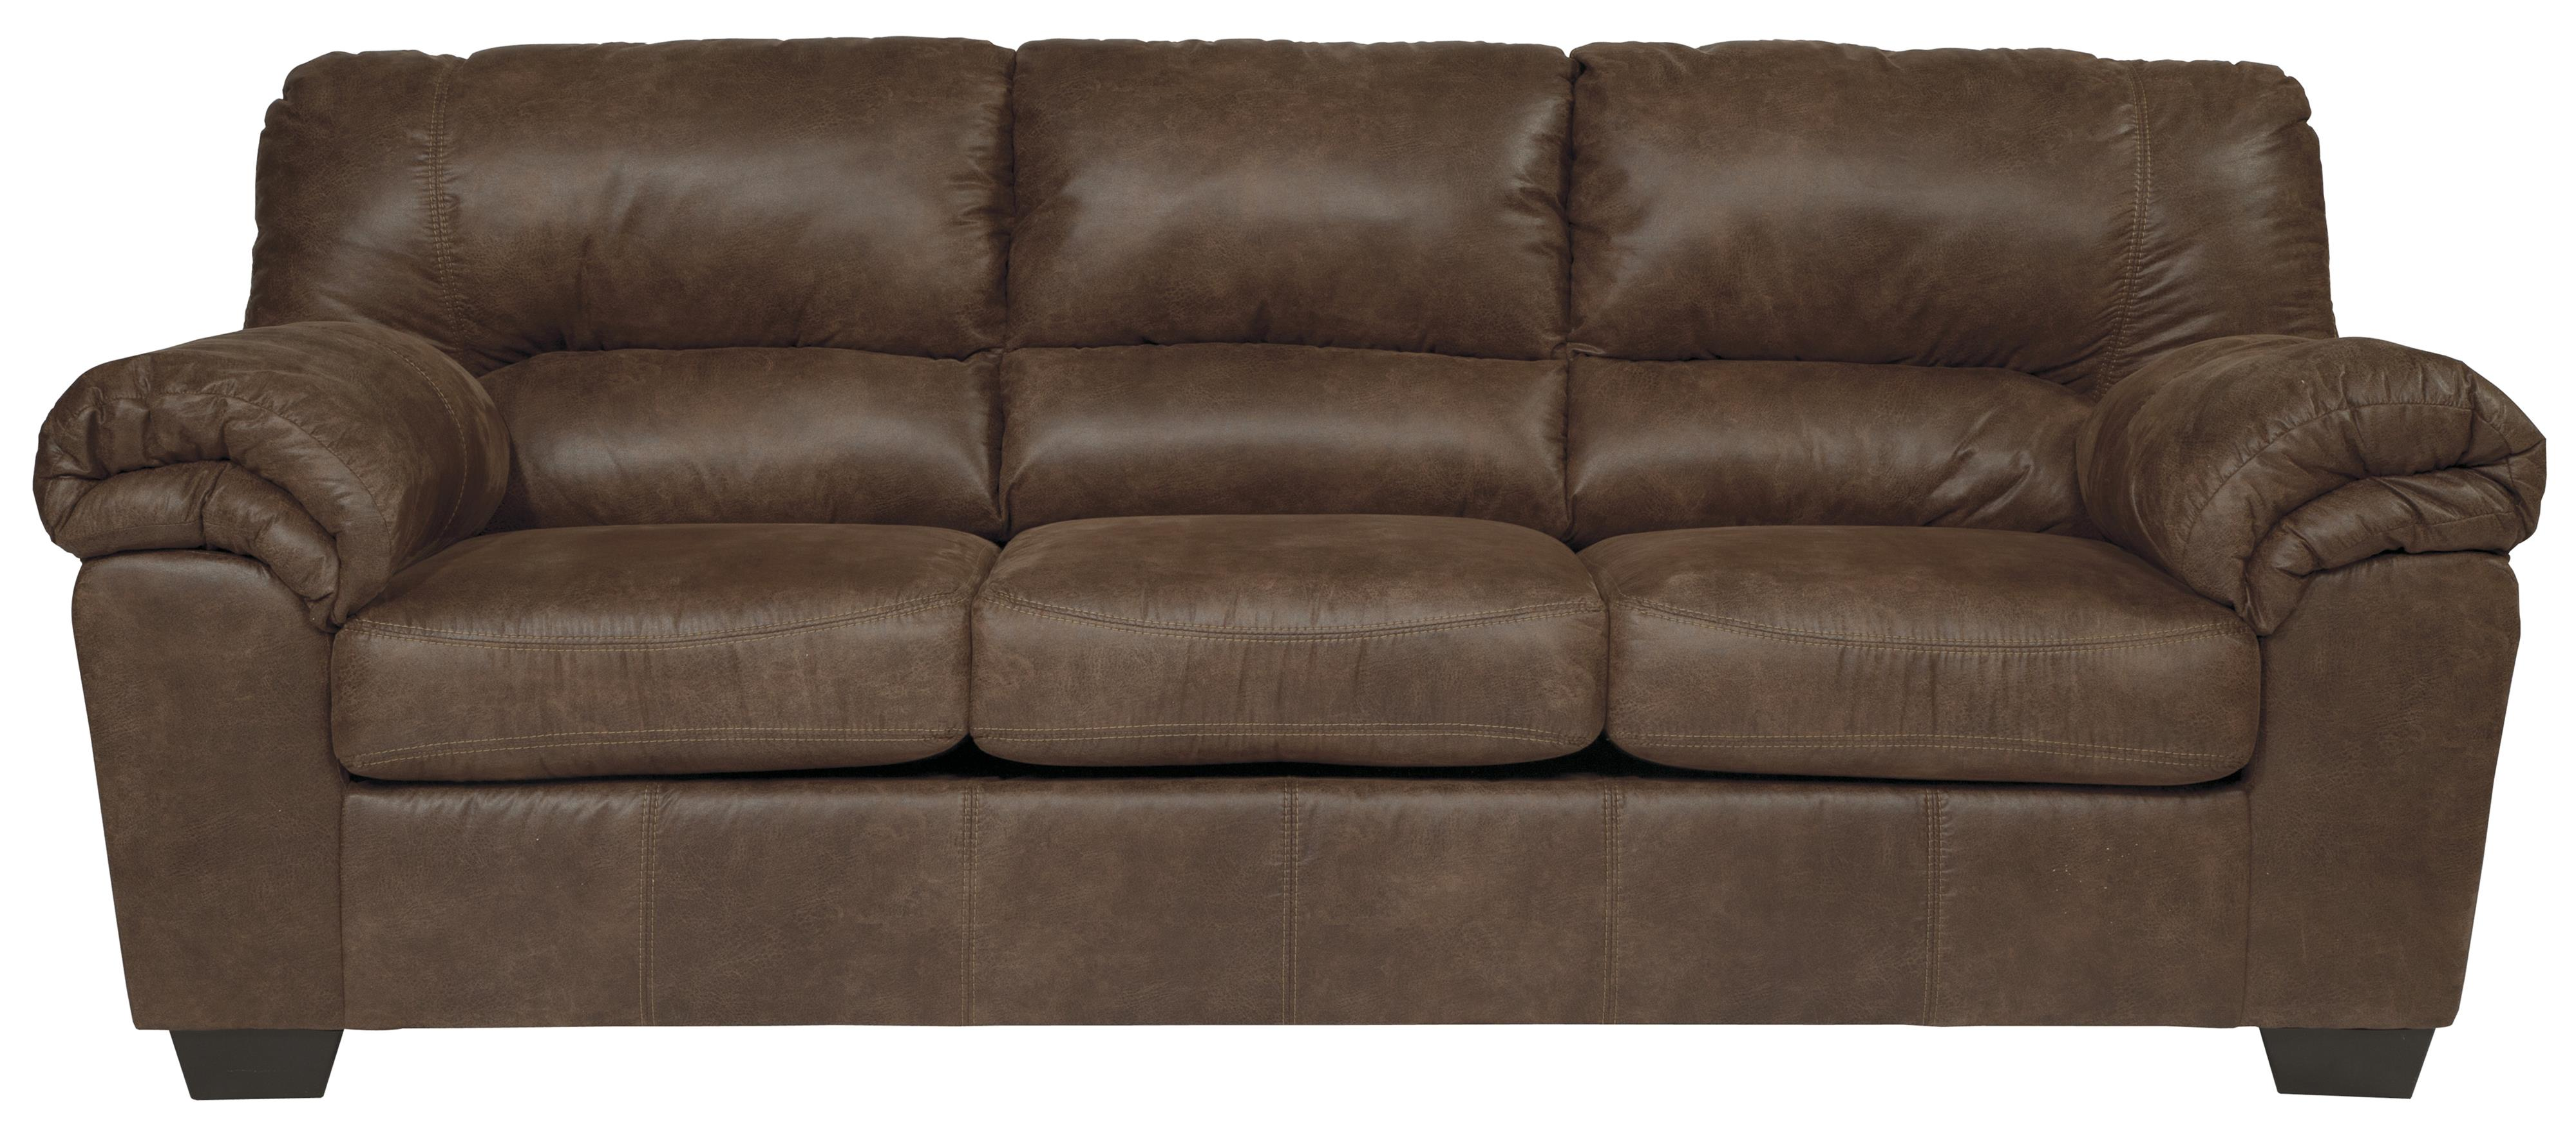 Casual Faux Leather Sofa by Signature Design by Ashley  Wolf Furniture